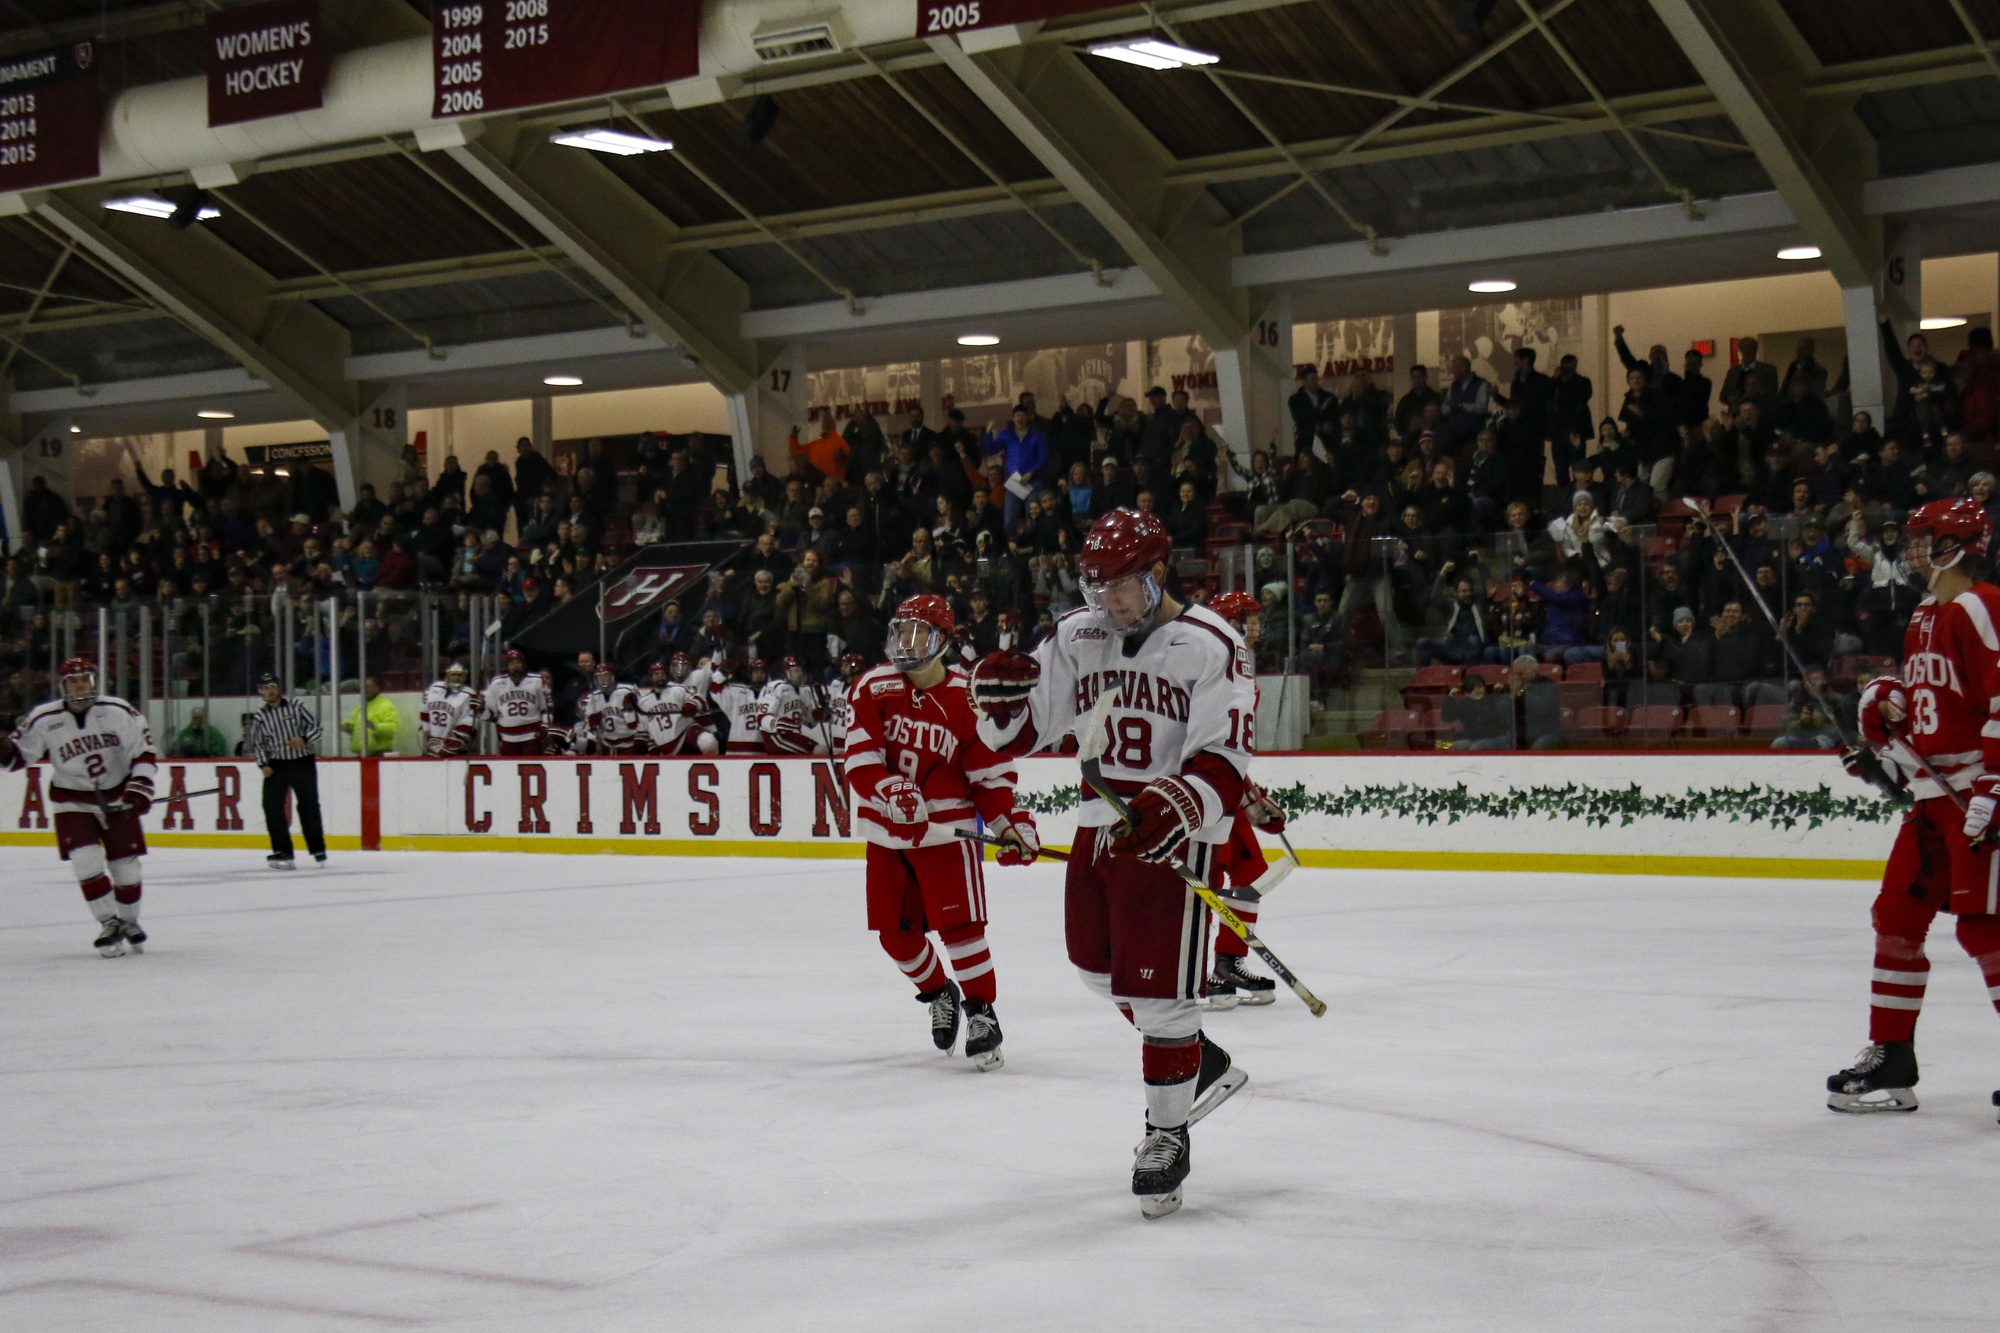 Harvard's elite offensive defenseman, Adam Fox, returned his name to its usual place — the scoresheet — on Tuesday night. Fox opened the scoring for the Crimson with a wrist shot from the slot.